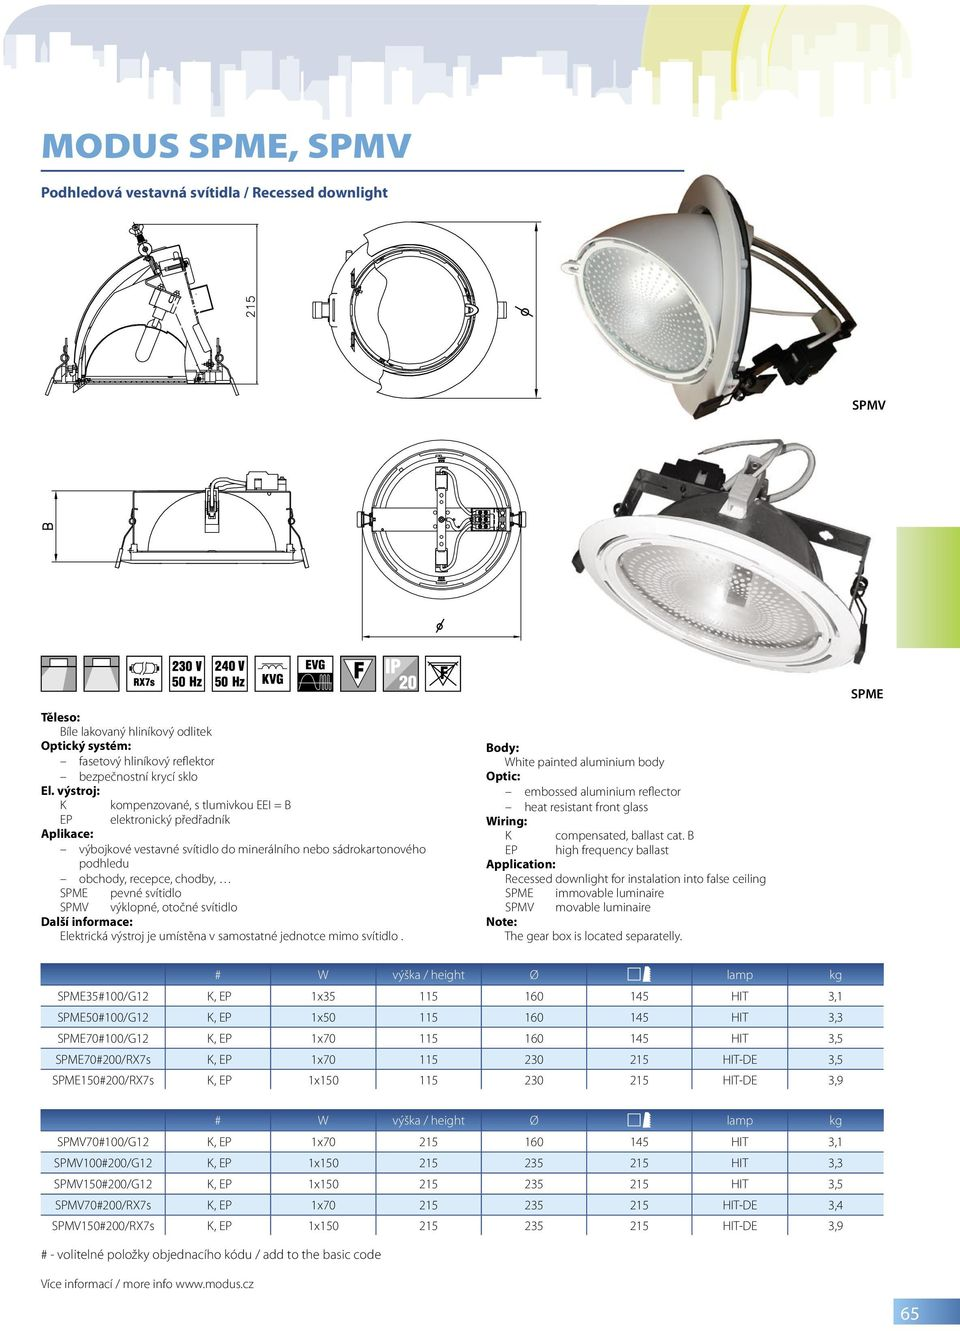 White painted aluminium body embossed aluminium reflector heat resistant front glass Recessed downlight for instalation into false ceiling SPME immovable luminaire SPMV movable luminaire Note: The